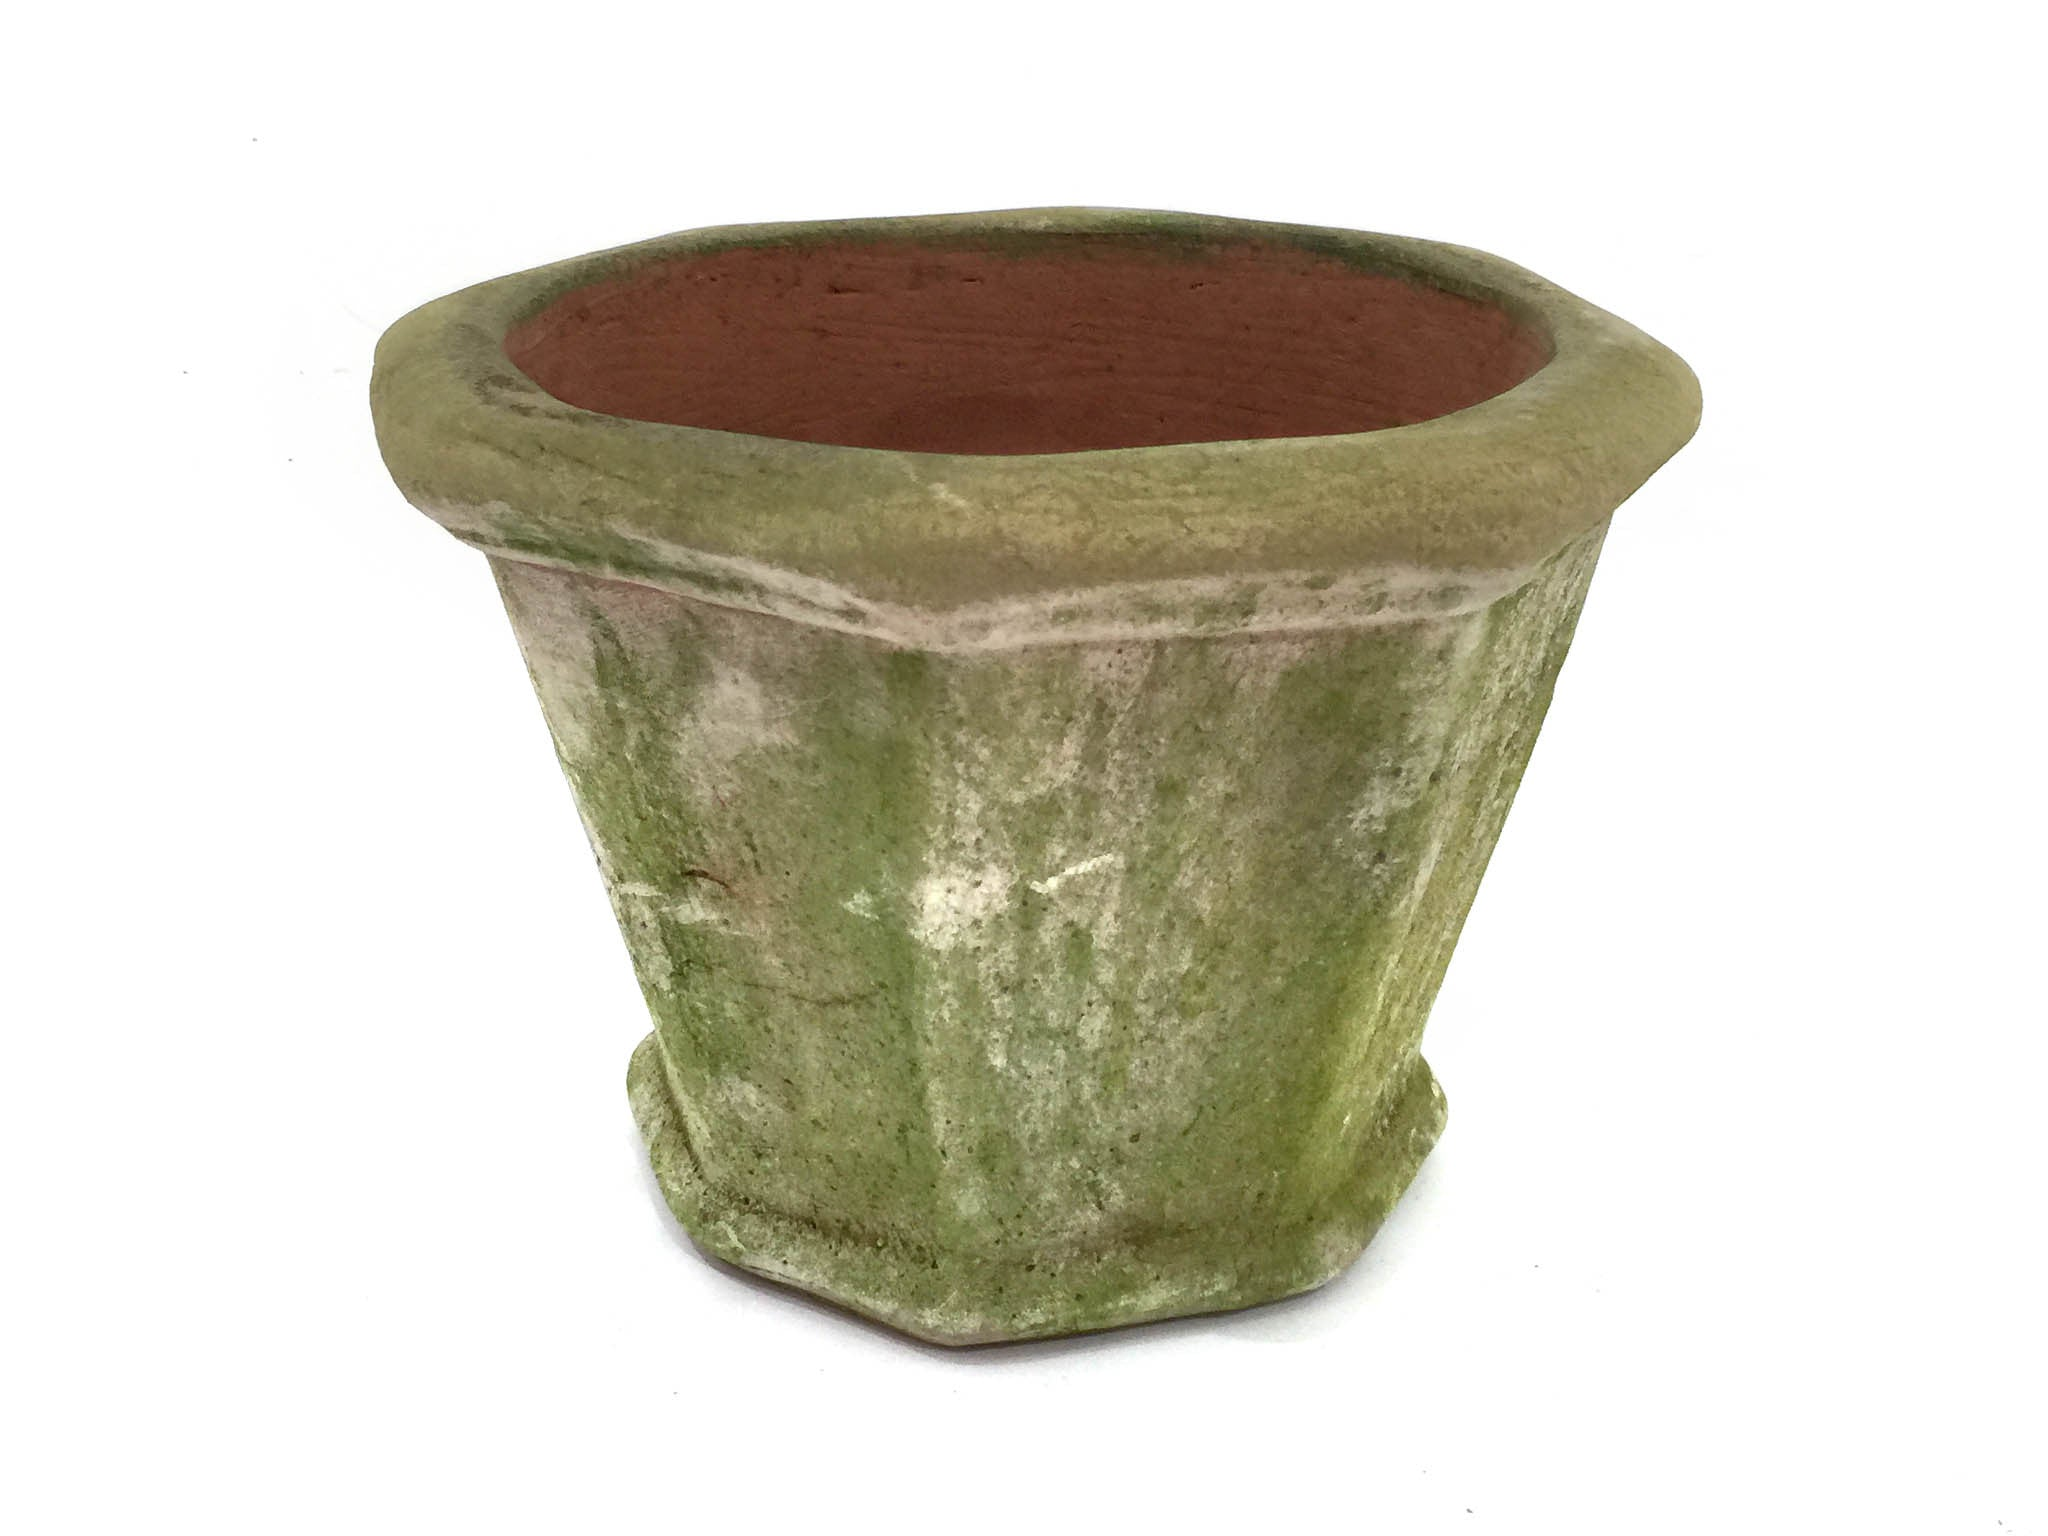 Aged Octagonal Planters - Small Scale - Small